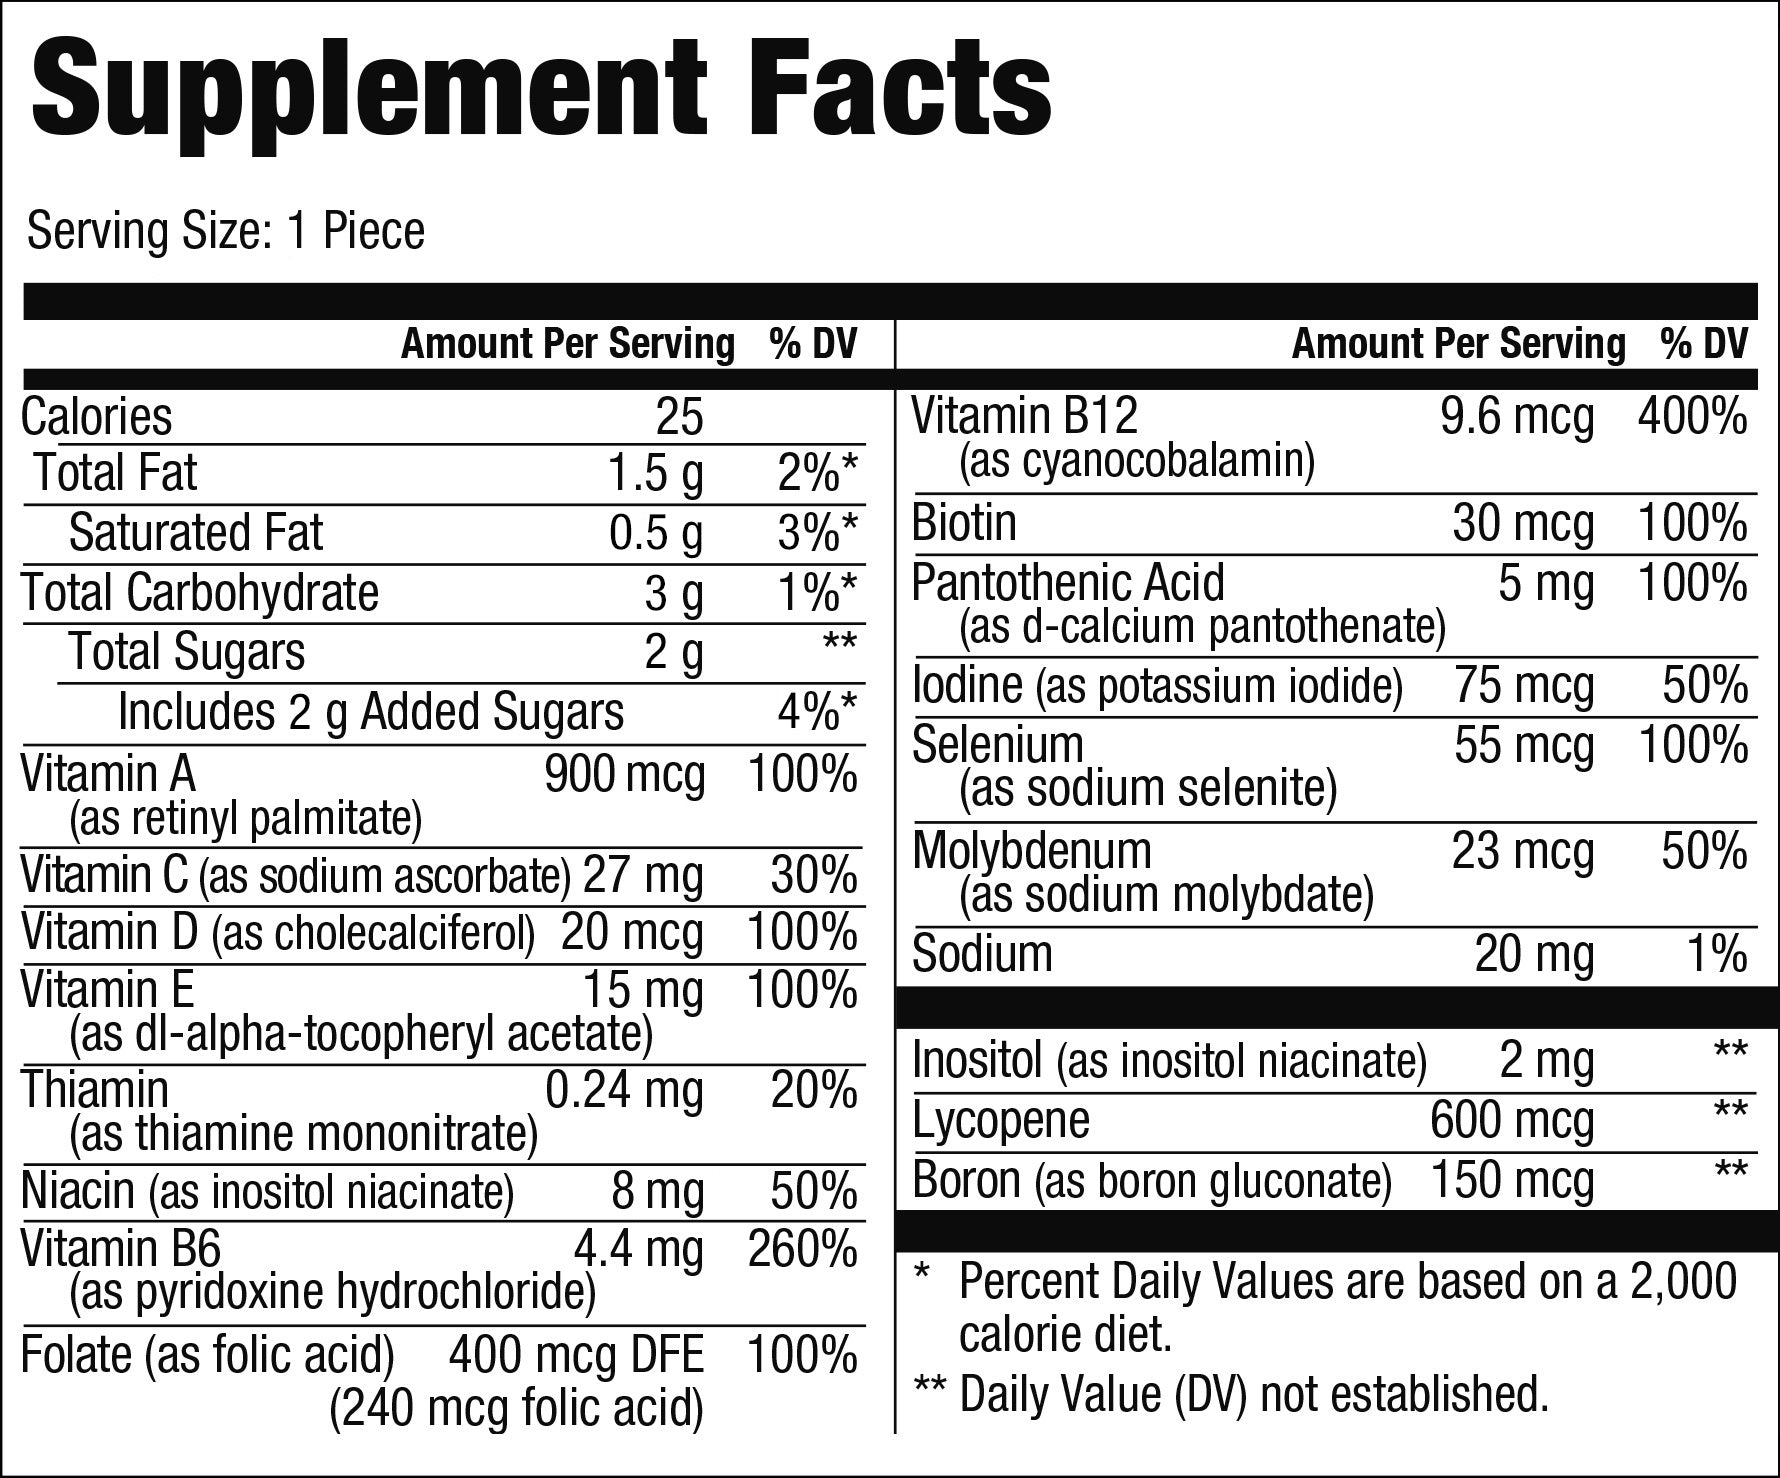 His Supplement Facts